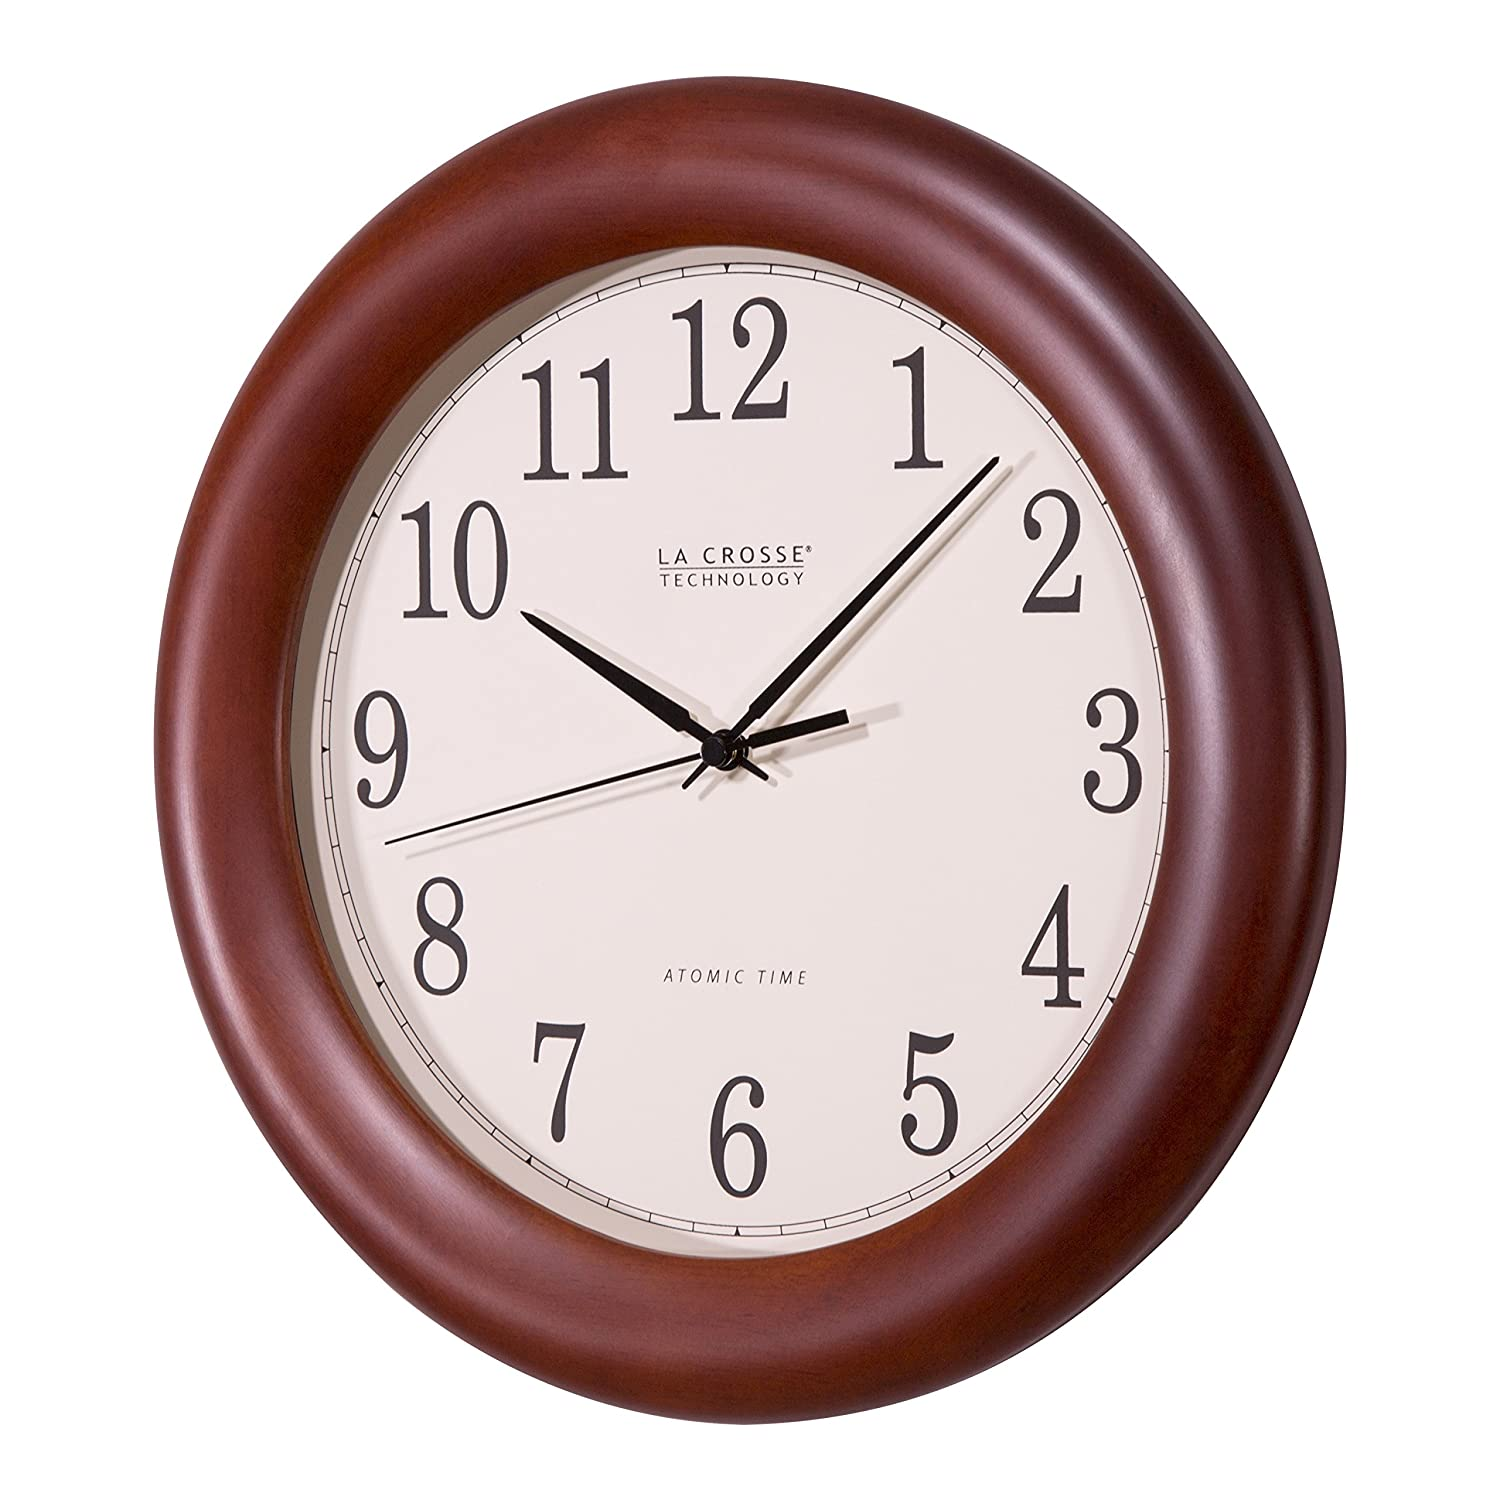 La Crosse Technology WT-3122A Mechanical wall clock Círculo Madera - Reloj de pared (AA, Madera, 31,8 cm): Amazon.es: Hogar